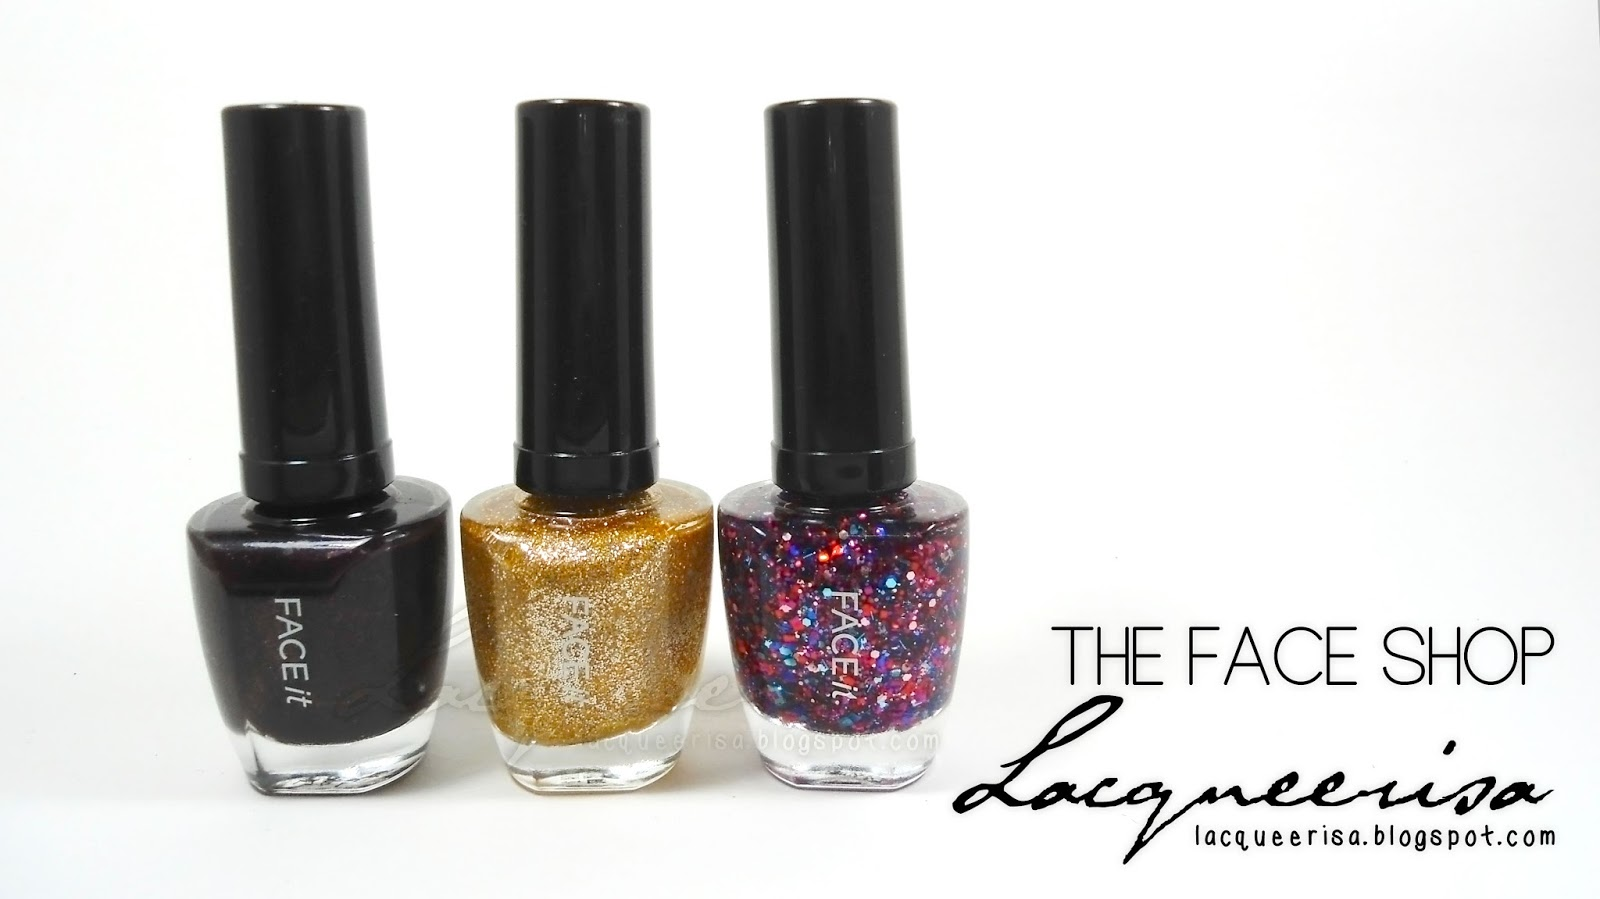 Lacqueerisa: The Face Shop Nail Polishes